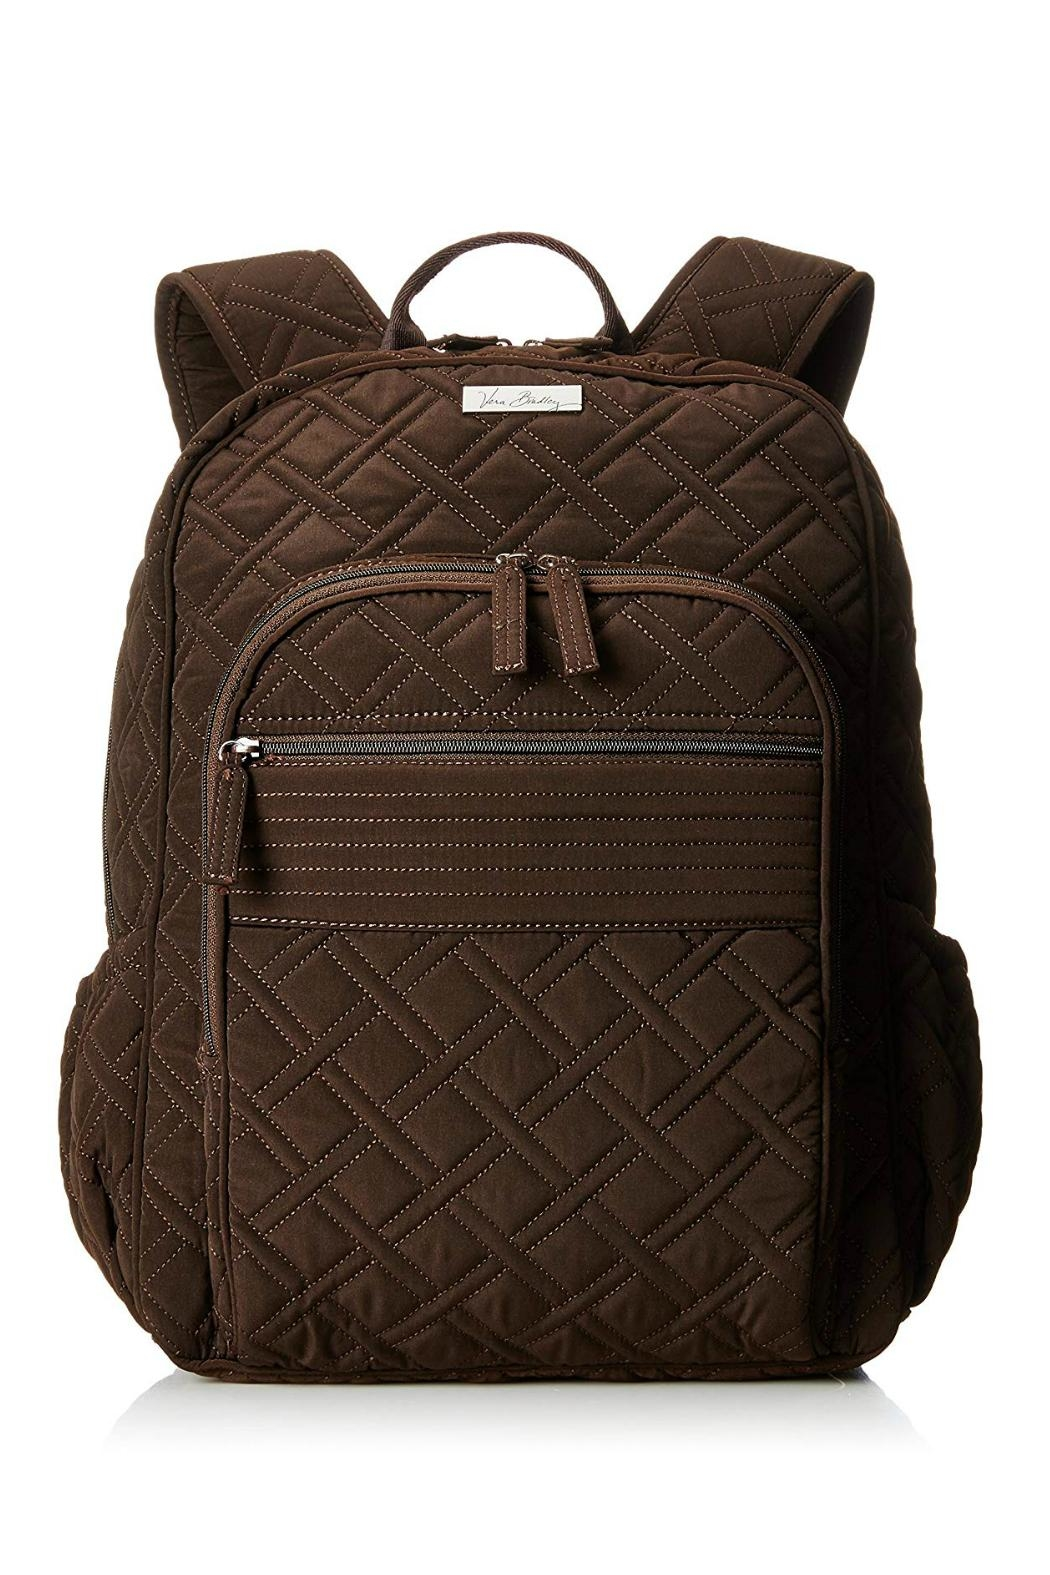 3afd91719 Vera Bradley Espresso Campus Backpack from Kentucky by Mimi's Gift ...